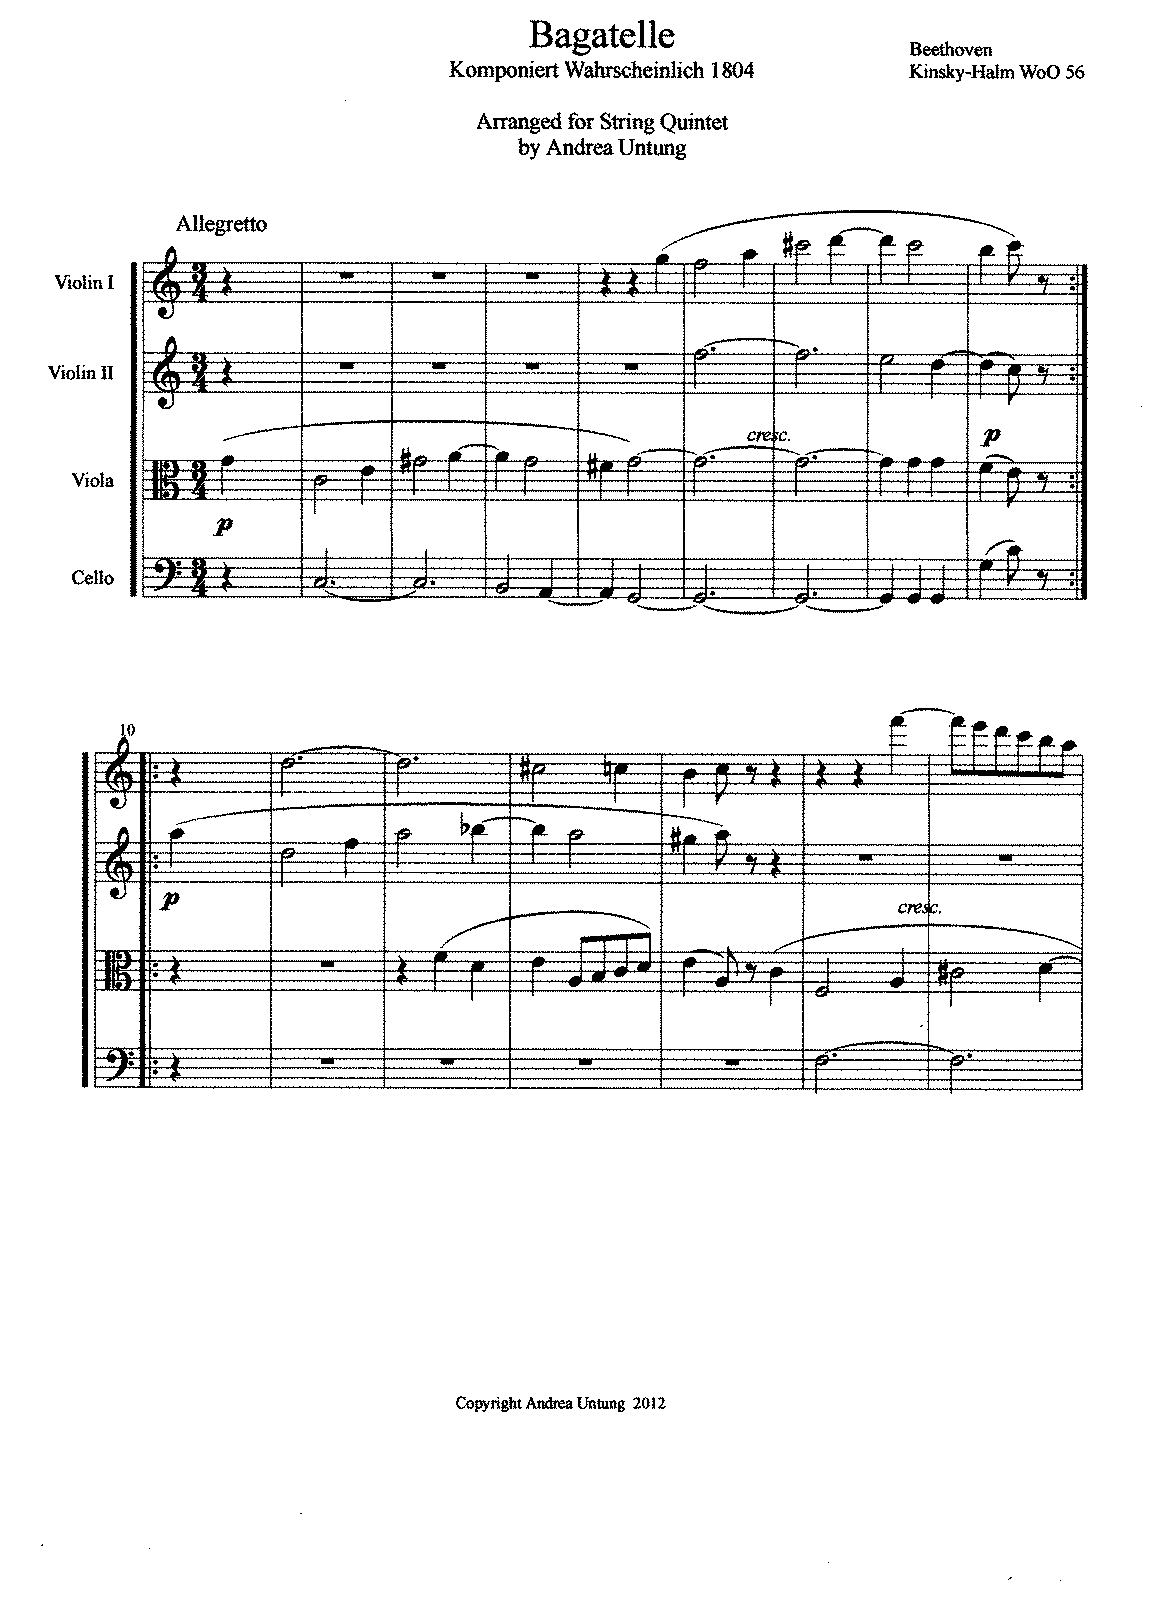 PMLP30949-Beethoven Strings Complete Score.pdf